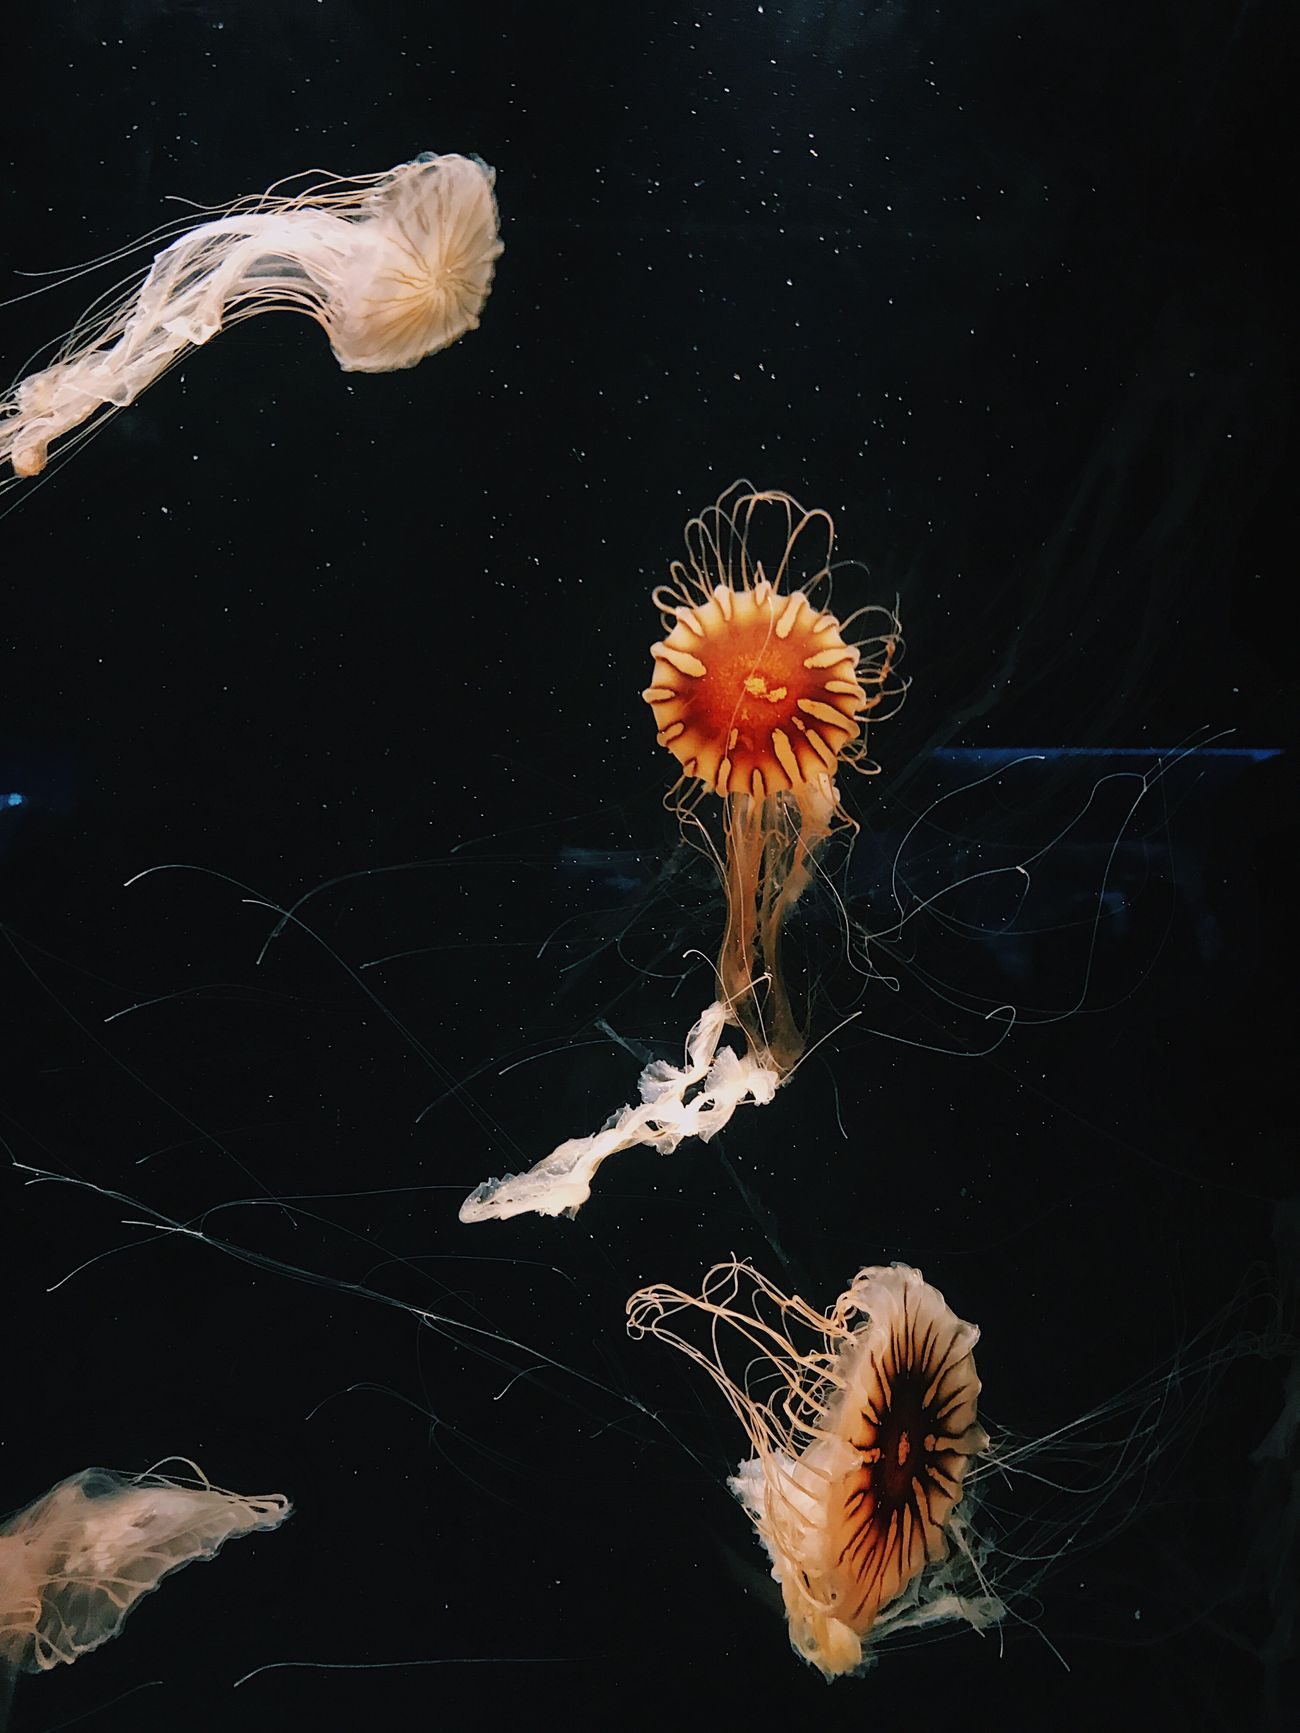 Jellyfish No. 6 Aquarium Jellyfish Sea Life Swimming Water Studio Shot Underwater No People Close-up Floating In Water Animals In The Wild Animal Themes Nature Beauty In Nature Indoors  Black Background UnderSea Day